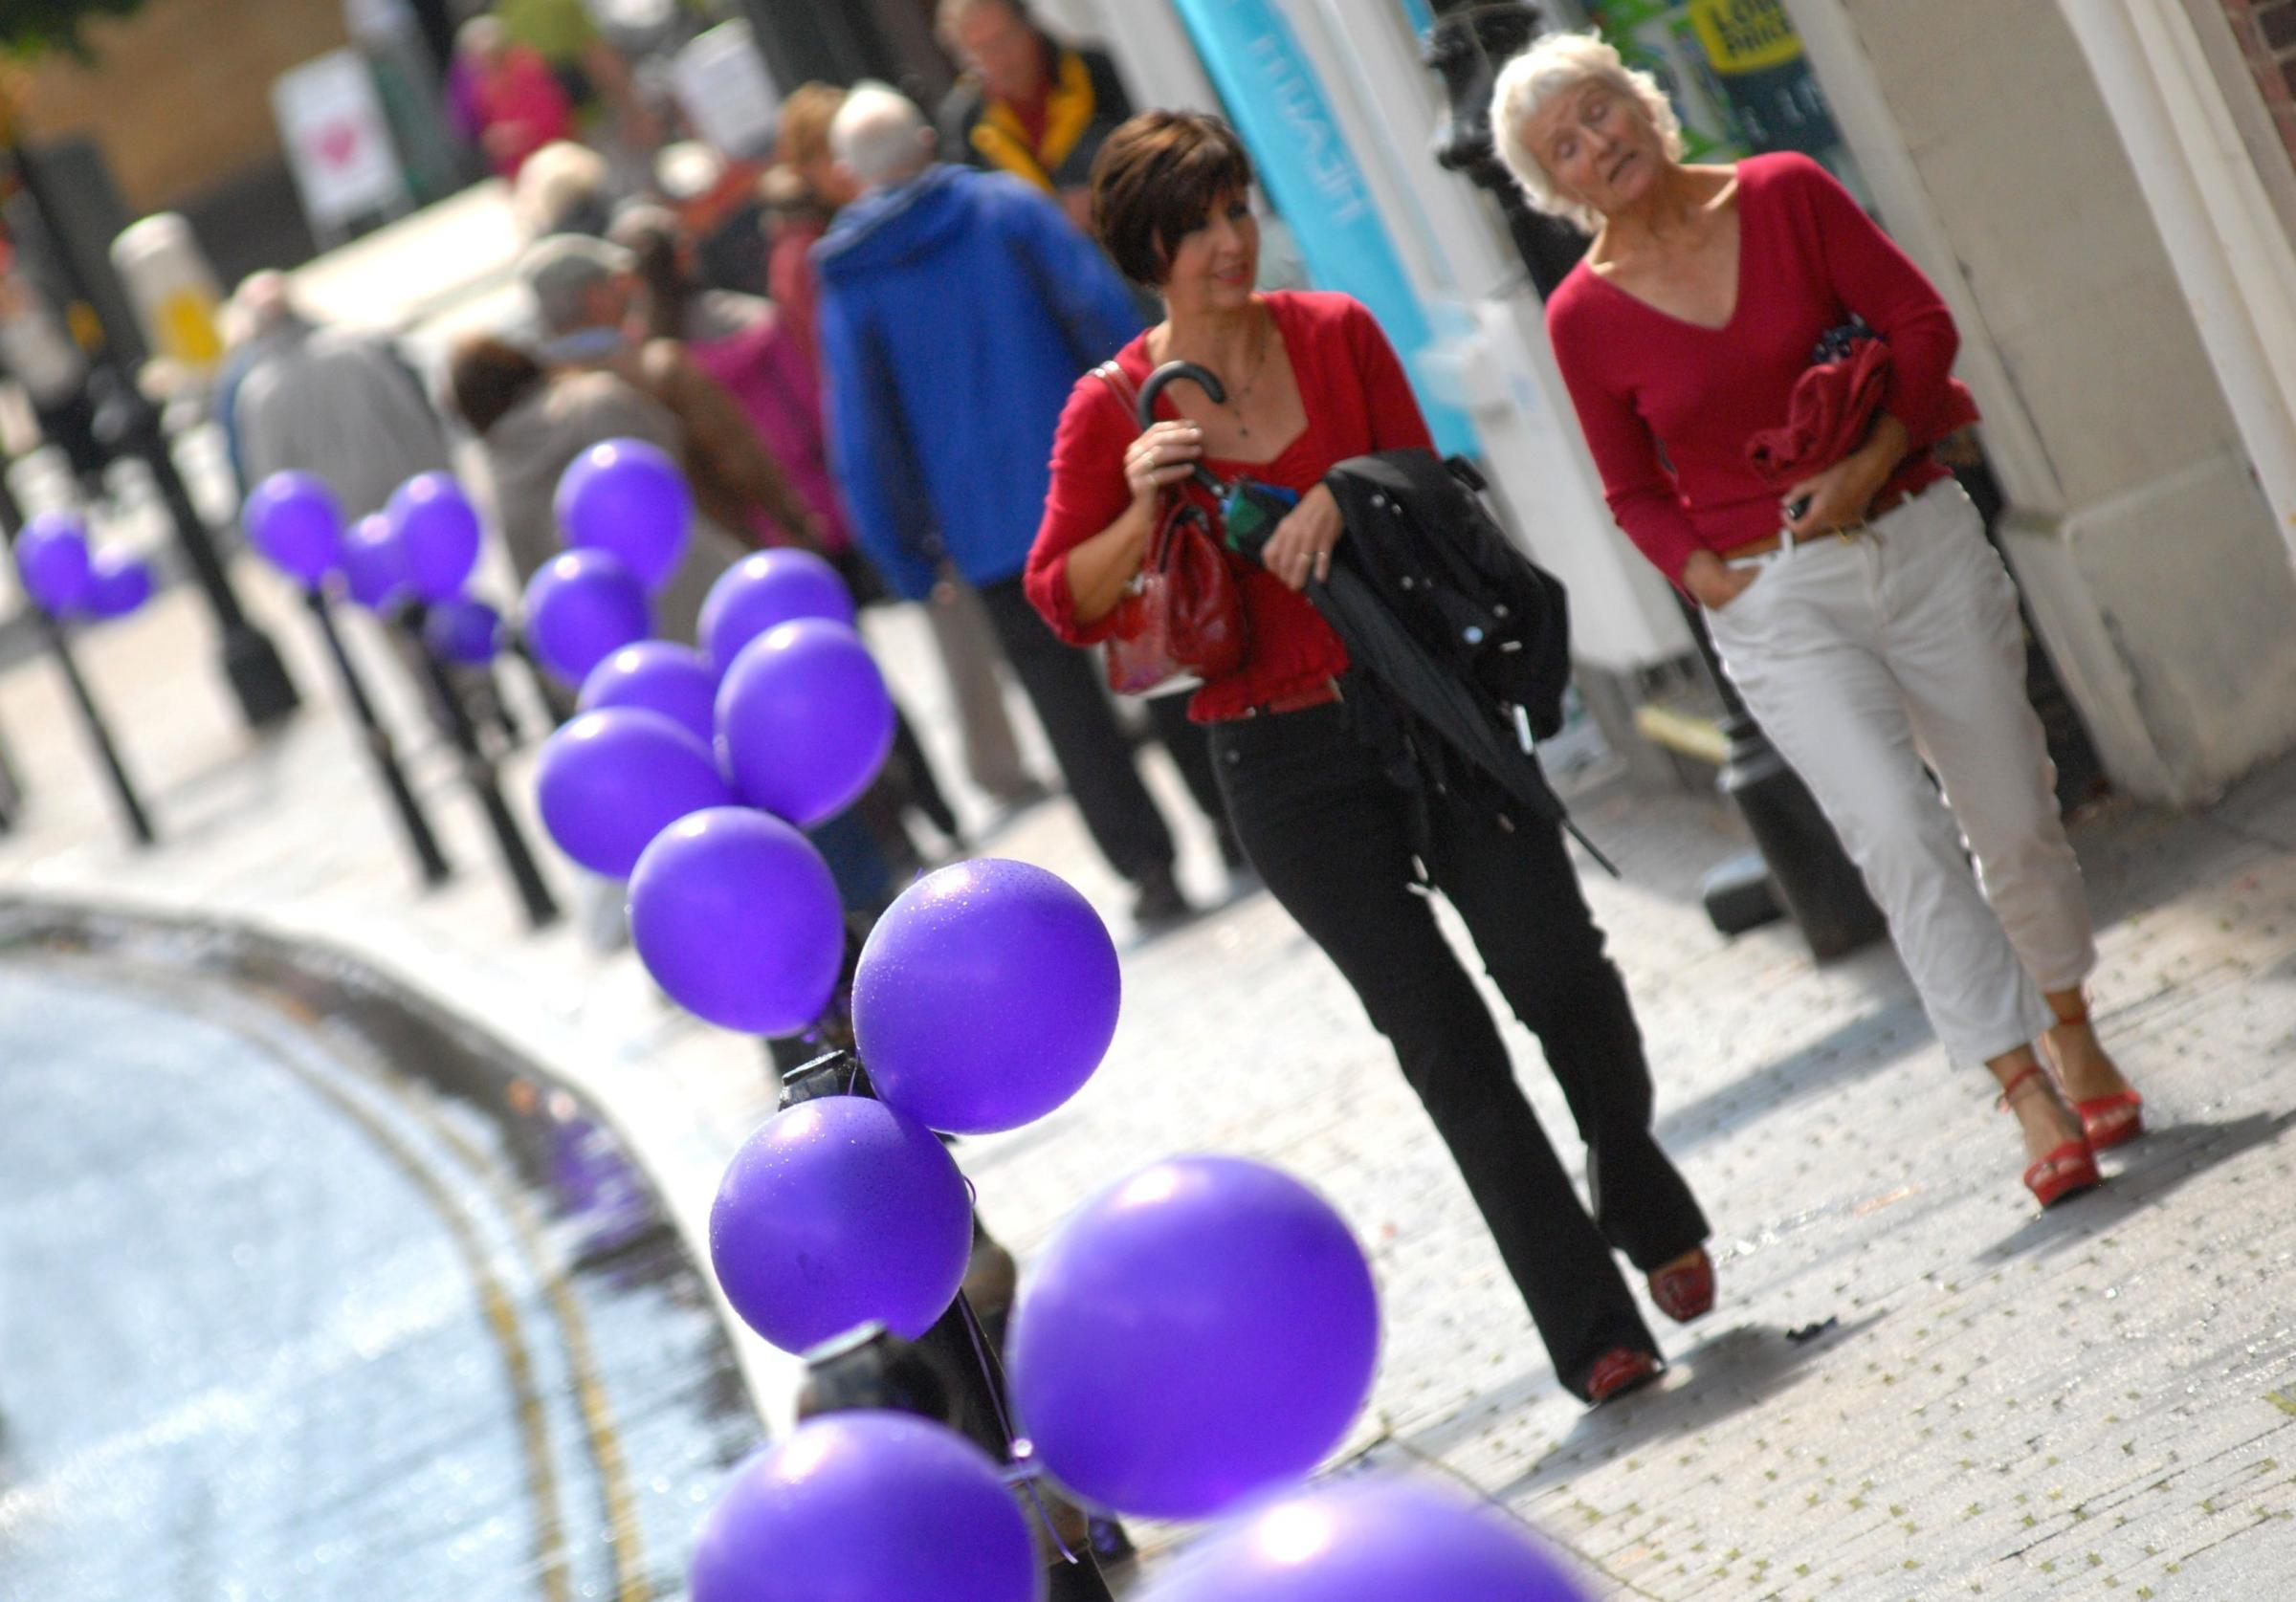 Town turns purple as plum festival gets underway